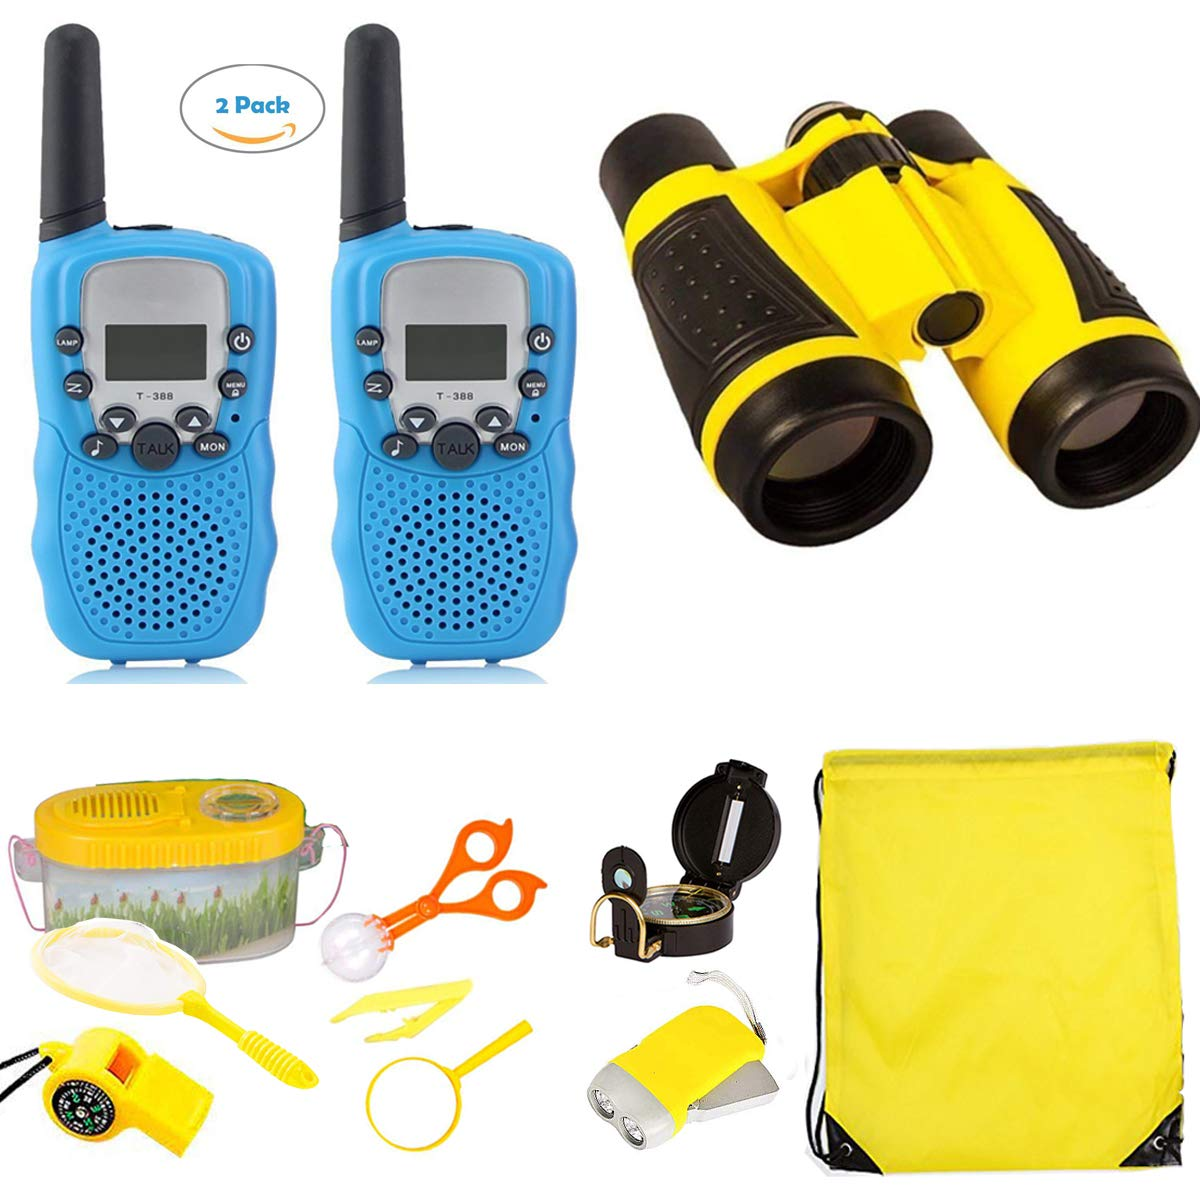 BESWIN Outdoor Toys for Kids Explorer Kit, 2 Packs Walkie Talkies with 3KM Long Rang, Binoculars for Kids, Flashlight, Compass, Bug Catcher Kit for Kids Gift for Camping, Hiking, STEM Toys by BESWIN (Image #1)